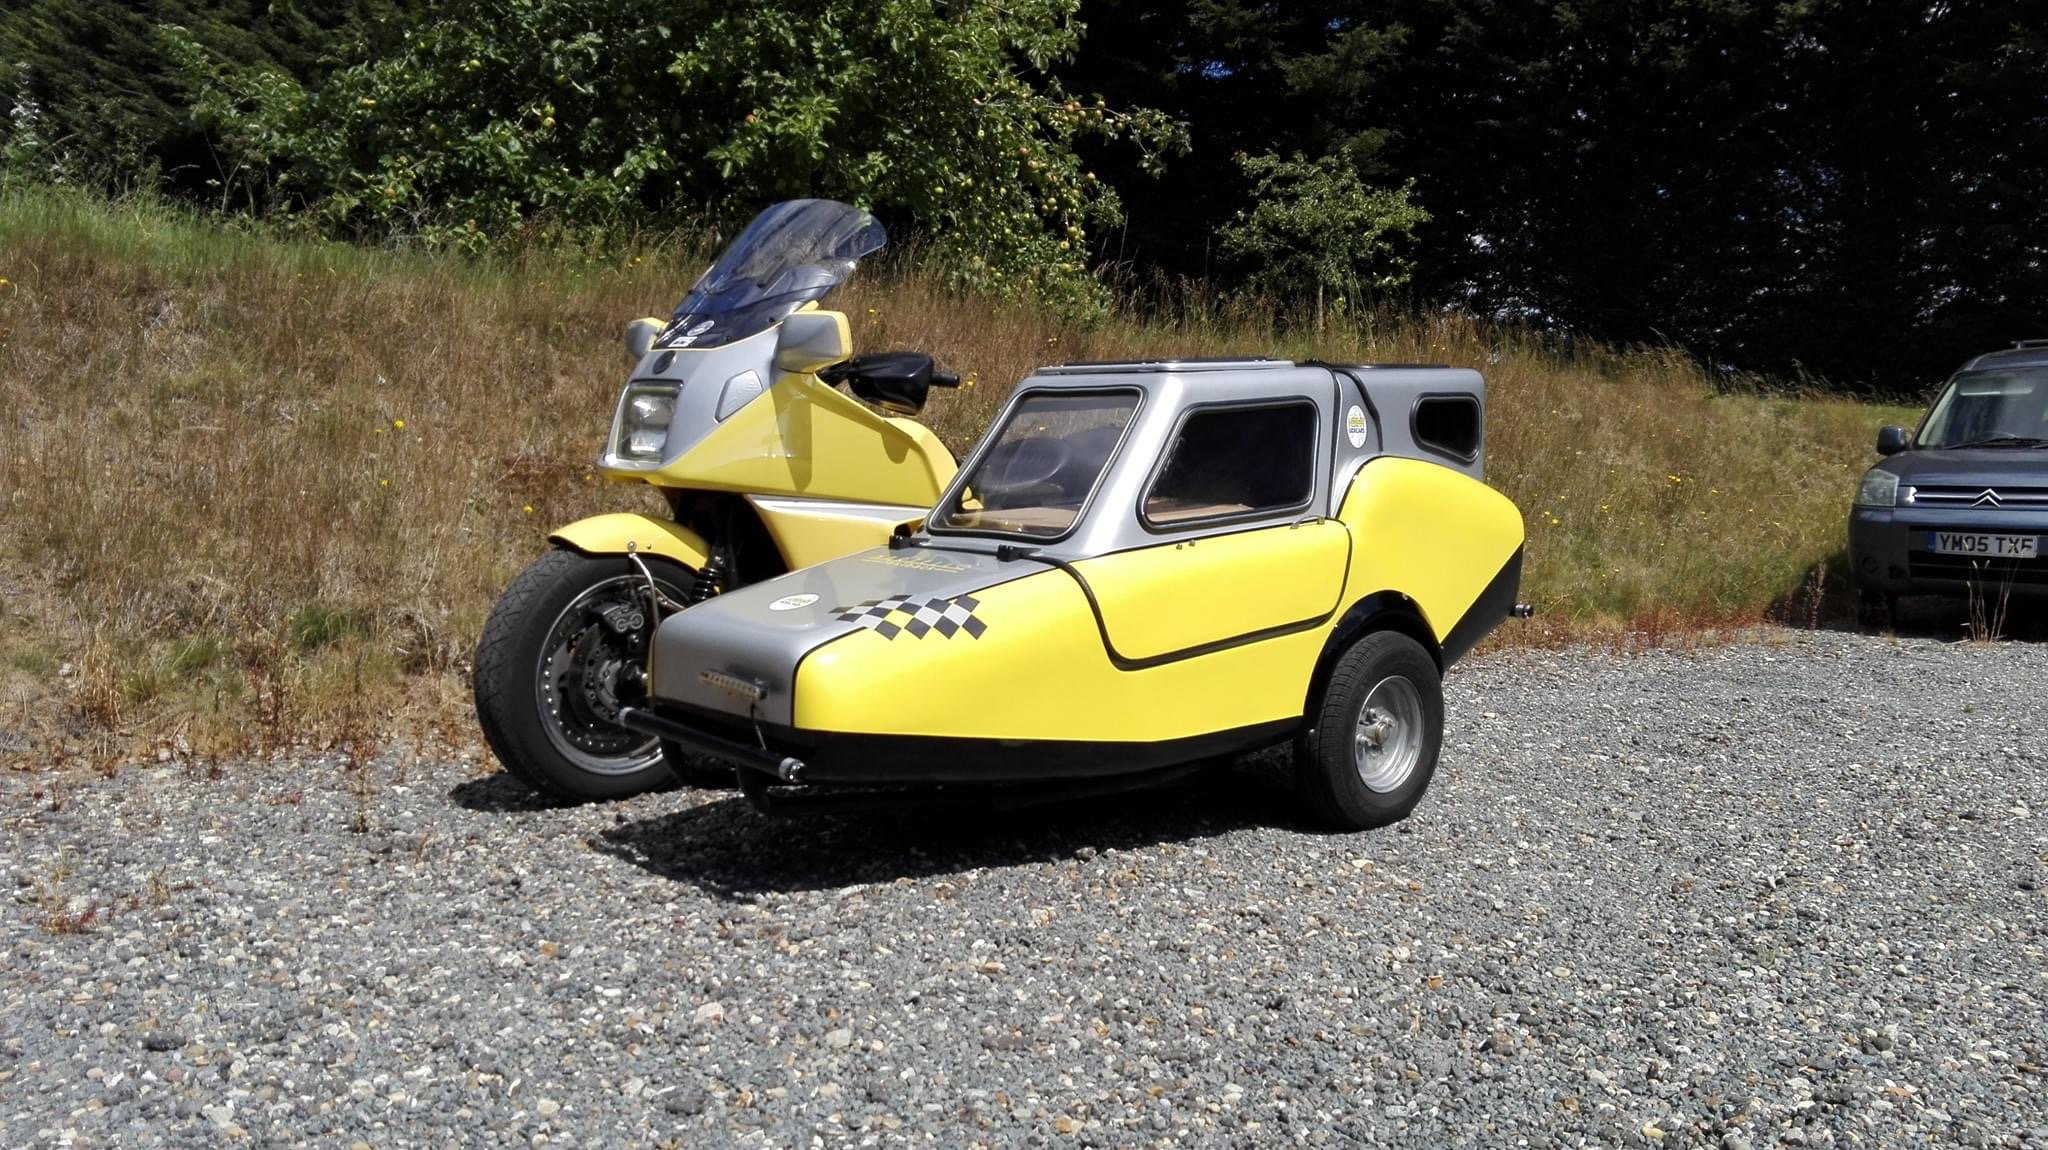 1997 BMW K1100LT Martello Sidecar Outfit For Sale (picture 1 of 6)